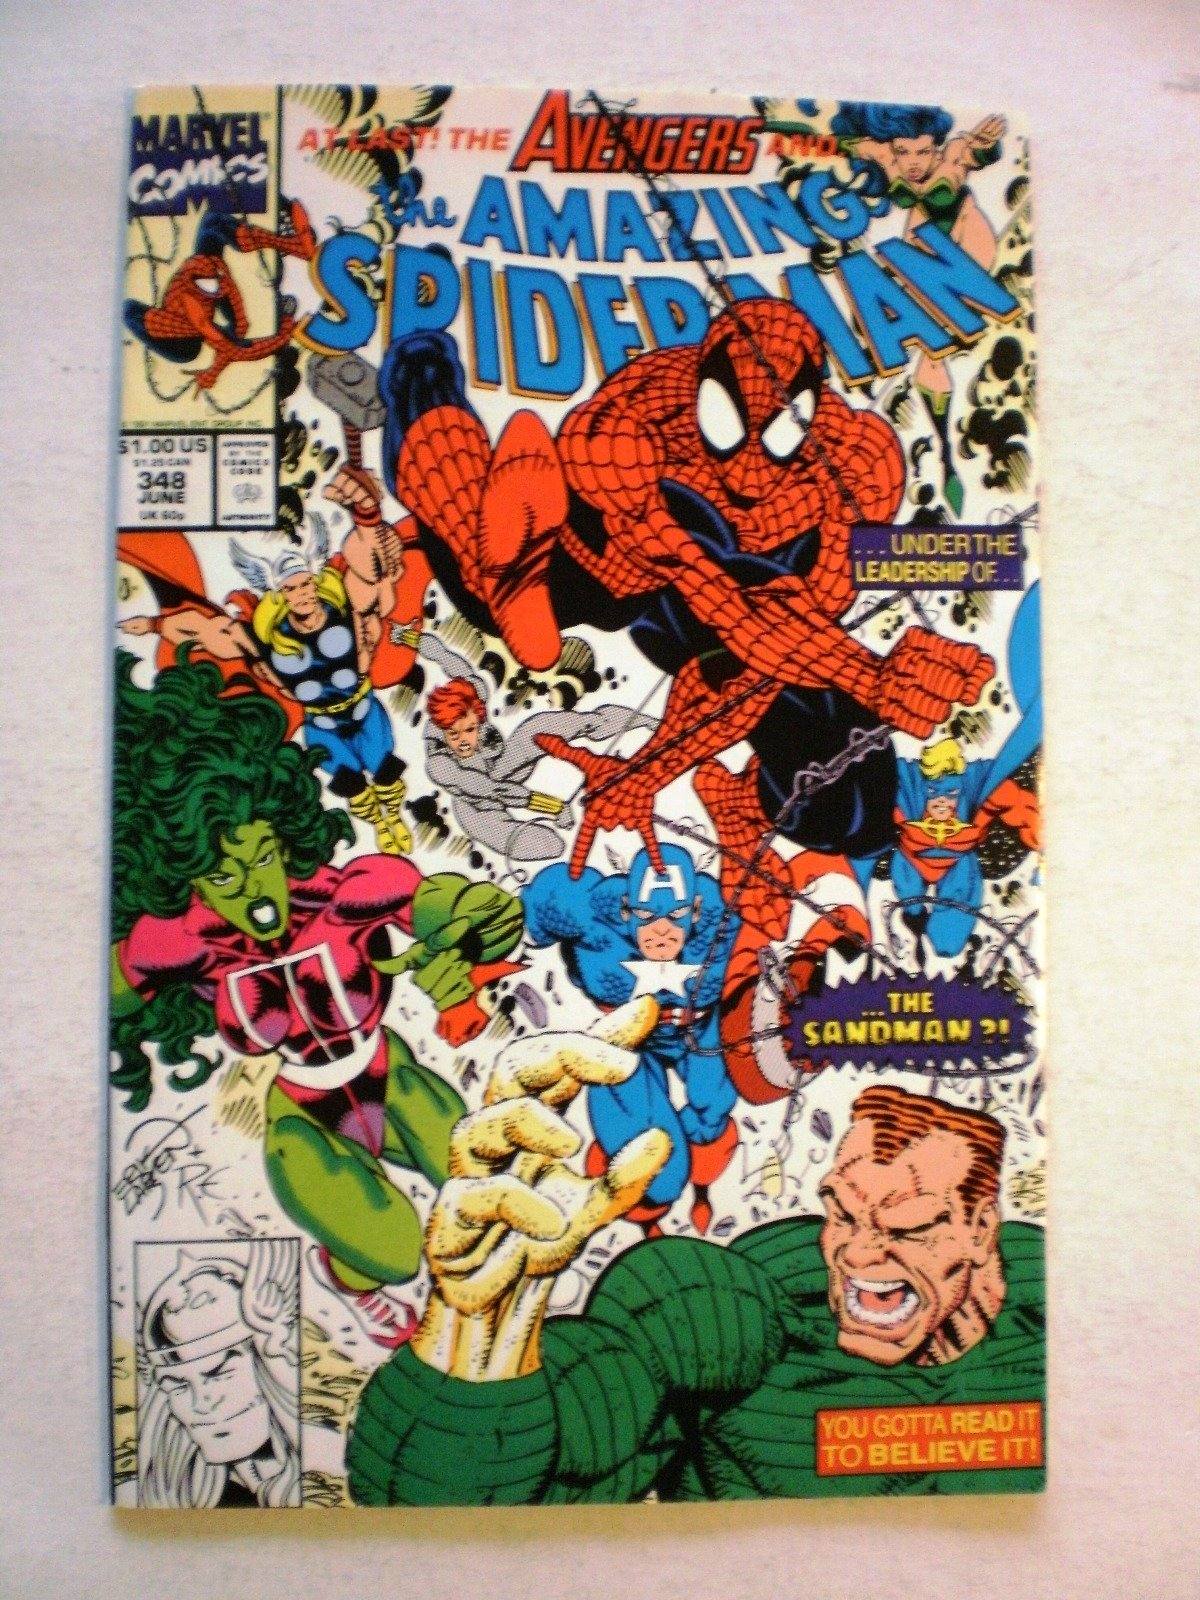 US Marvel - Amazing Spiderman vol 1 # 348 - VF